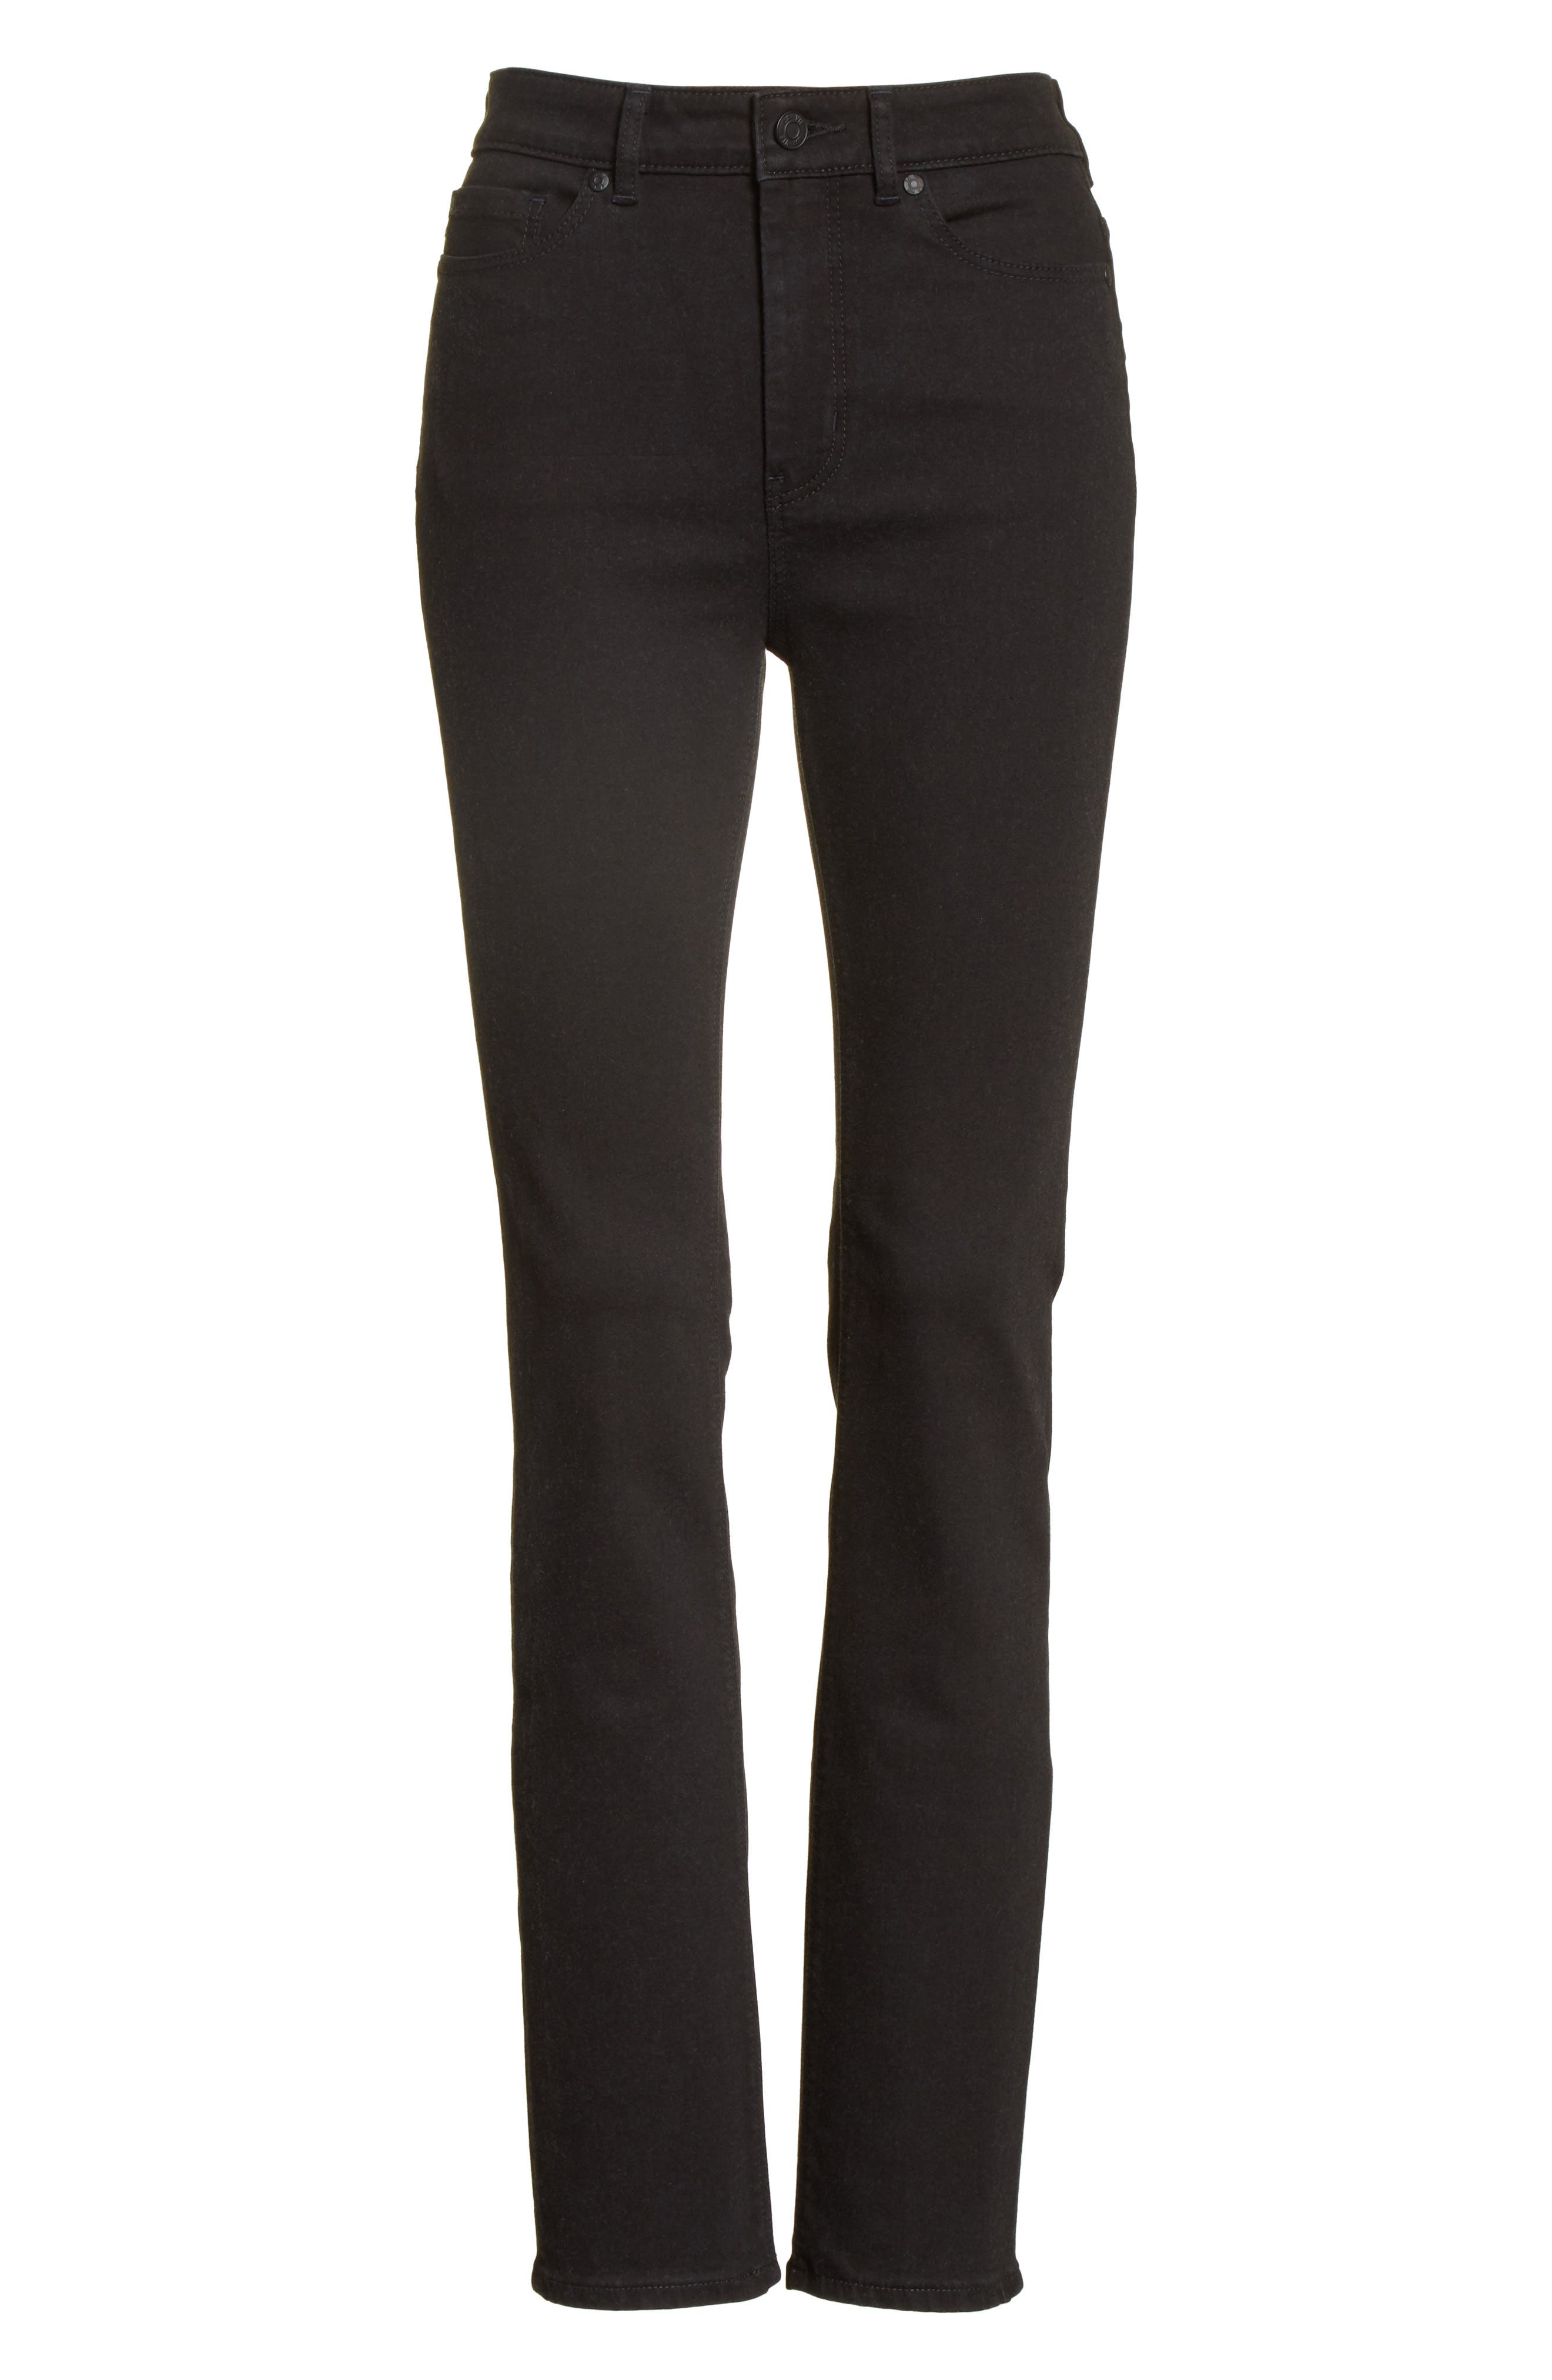 Clemence Skinny Pants,                             Alternate thumbnail 6, color,                             Coal Wash